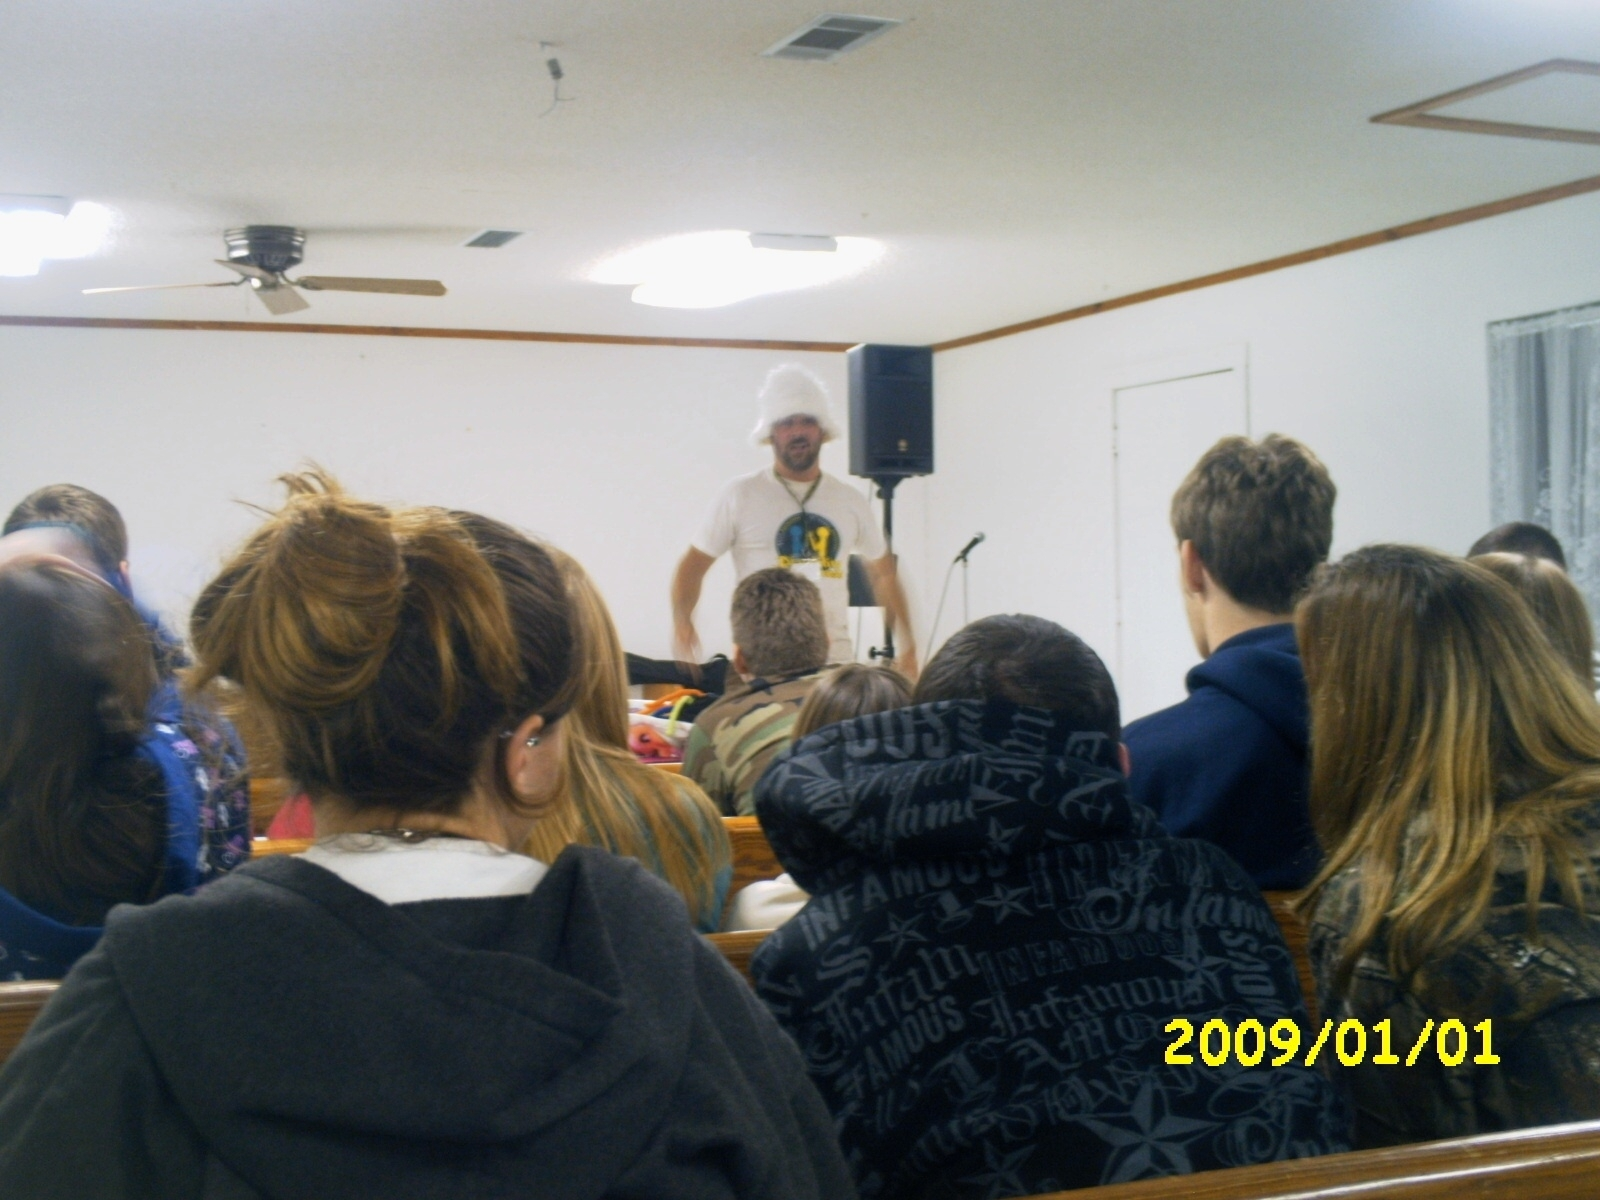 From Youth Lock-in 2008-09